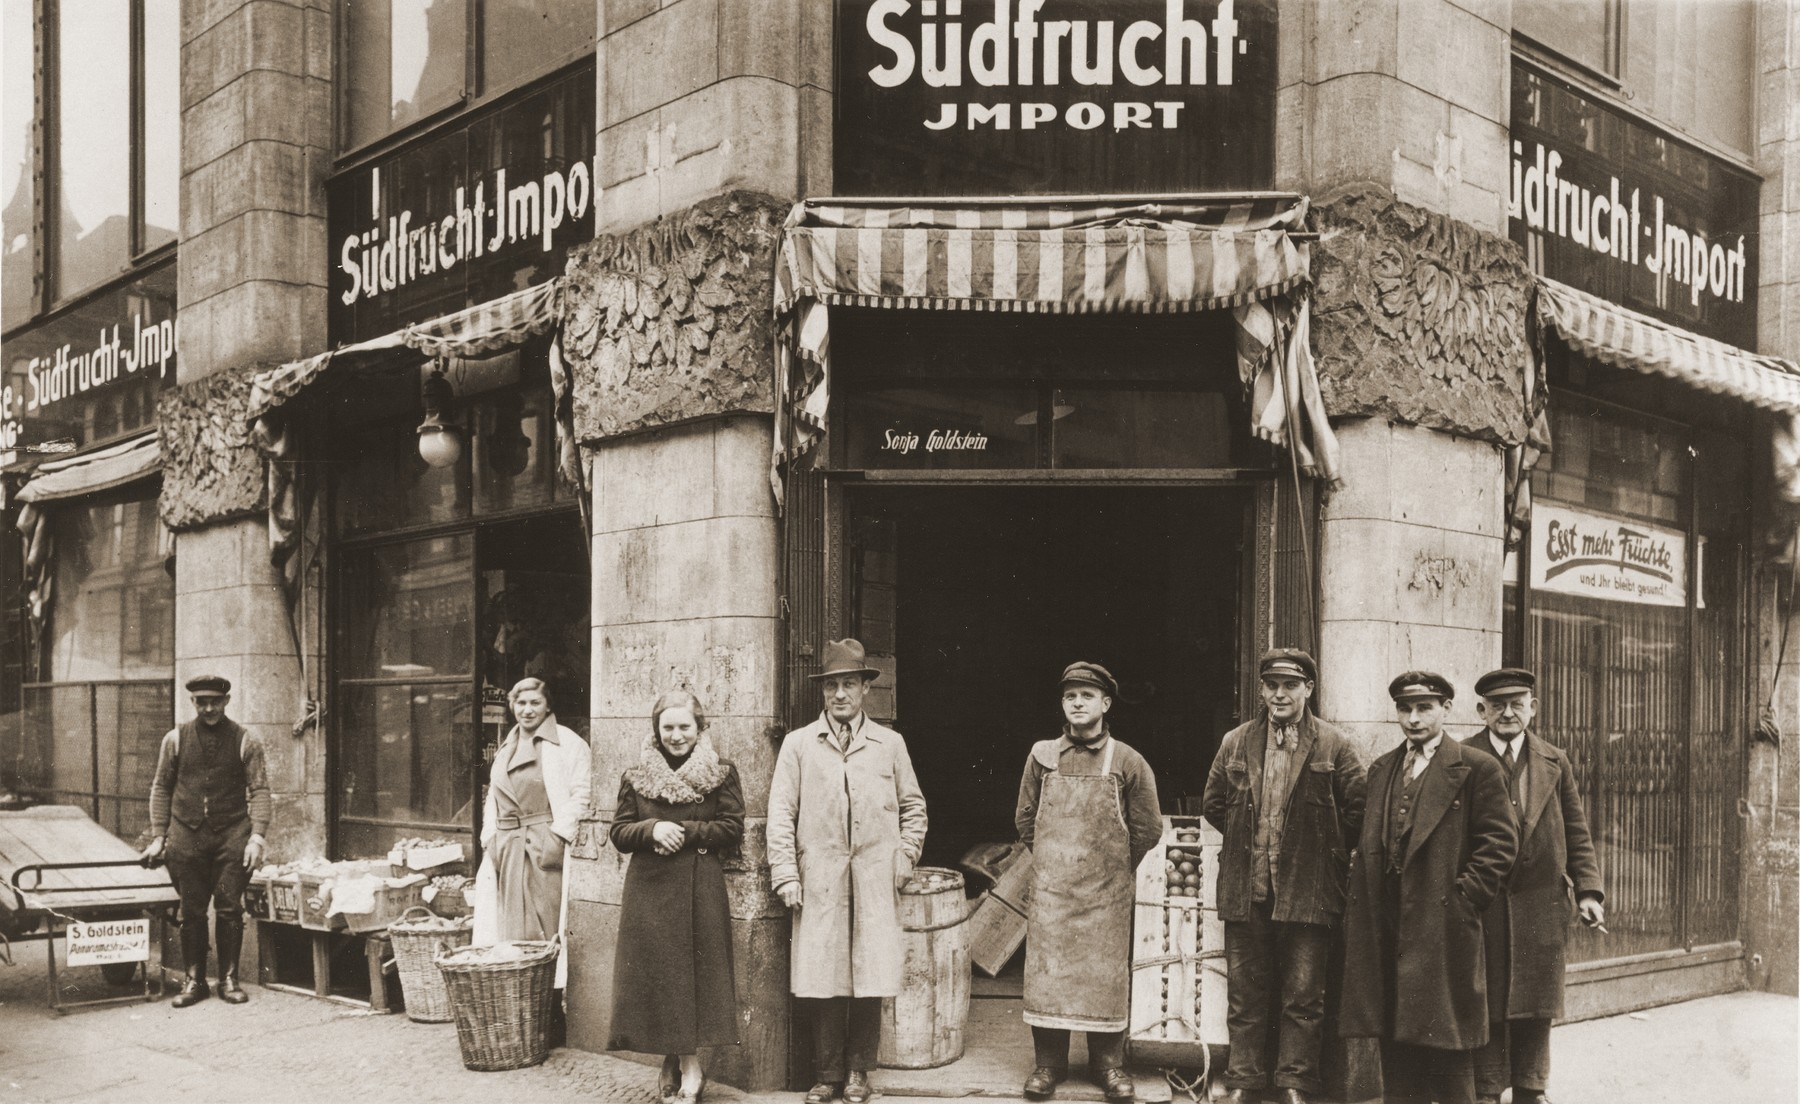 Bernhard and Sonja Schadur Goldstein pose with some of their employees in front of their fruit business in Berlin.  Sonja is pictured on the left behind a basket.  Bernhard is in the center wearing a trench coat.  Sonja was the sister of Michel Schadur, whom he set up in the fruit business in Berlin in the early 1930s.  Sonja married a German-Jew, Bernhard Goldstein and had one daughter while living in Berlin.  After Kristallnacht Bernhard was imprisoned briefly in Sachsenhausen.  Upon his release the family fled to Antwerp.  In March 1940 they secured American visas and sailed to the U.S.